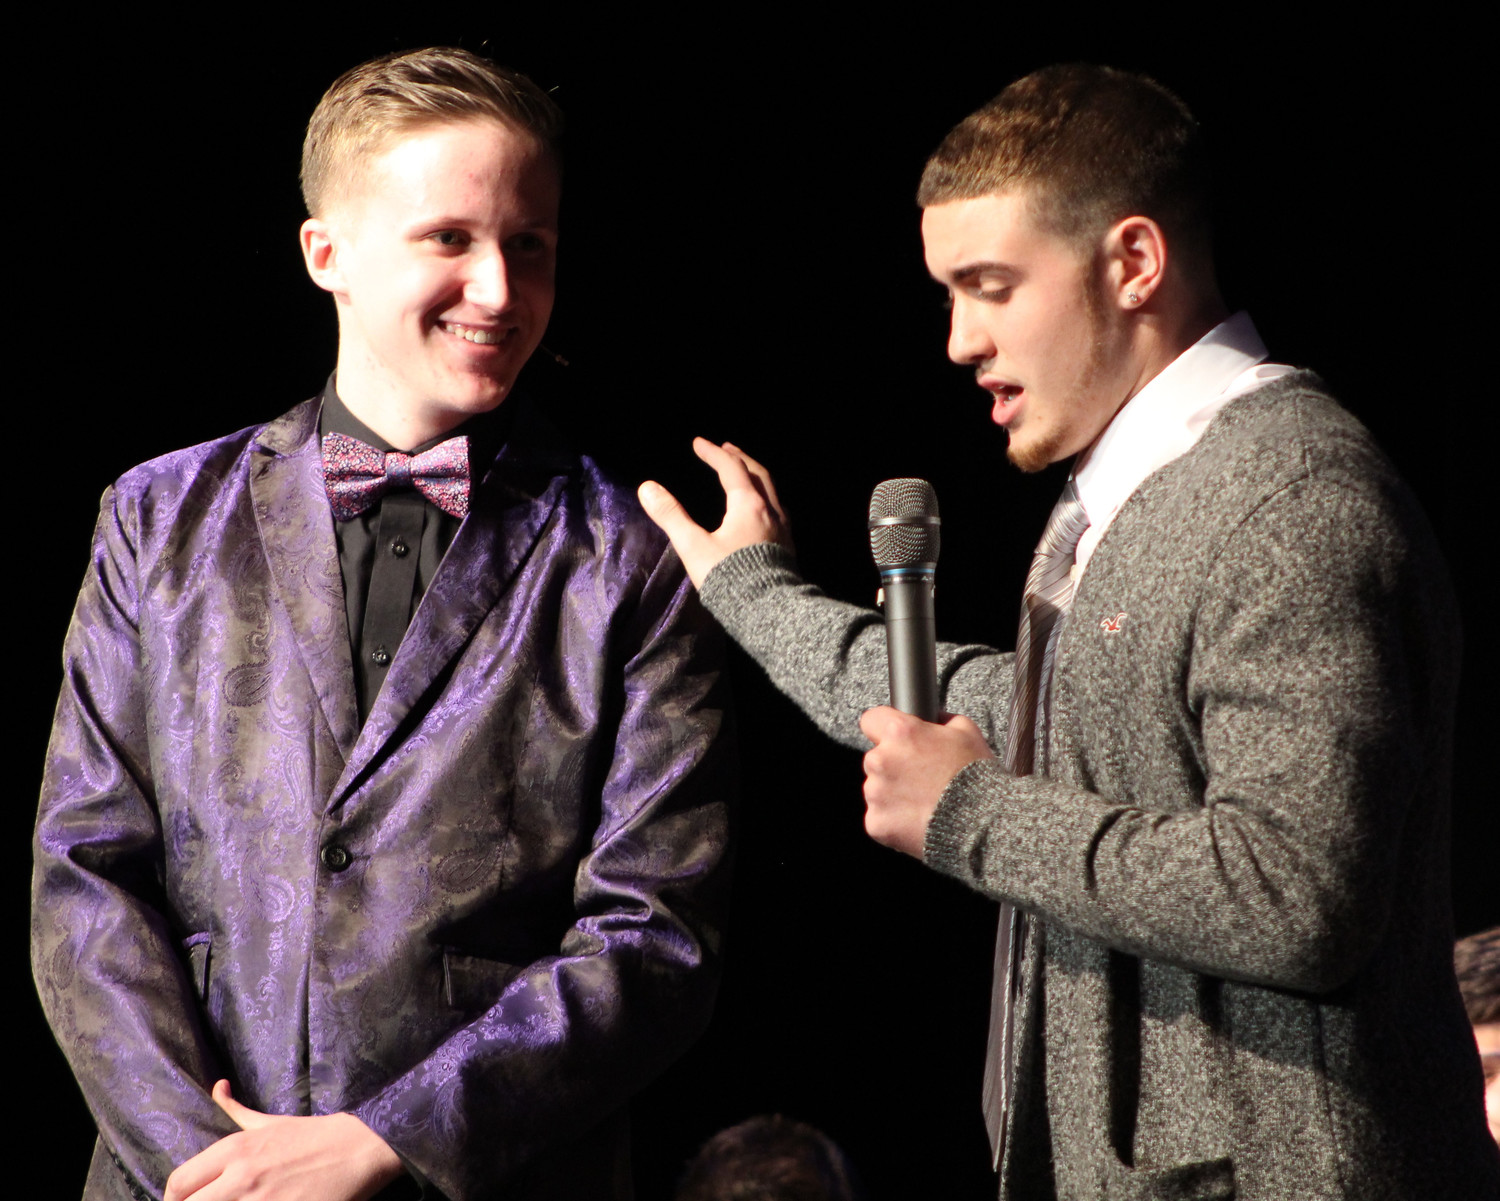 Mr. Middletown winner Tre' Leach, right, answers questions from emcee Gabe Wisniewski during the interview portion of the Mr. Middletown pageant on April 13.